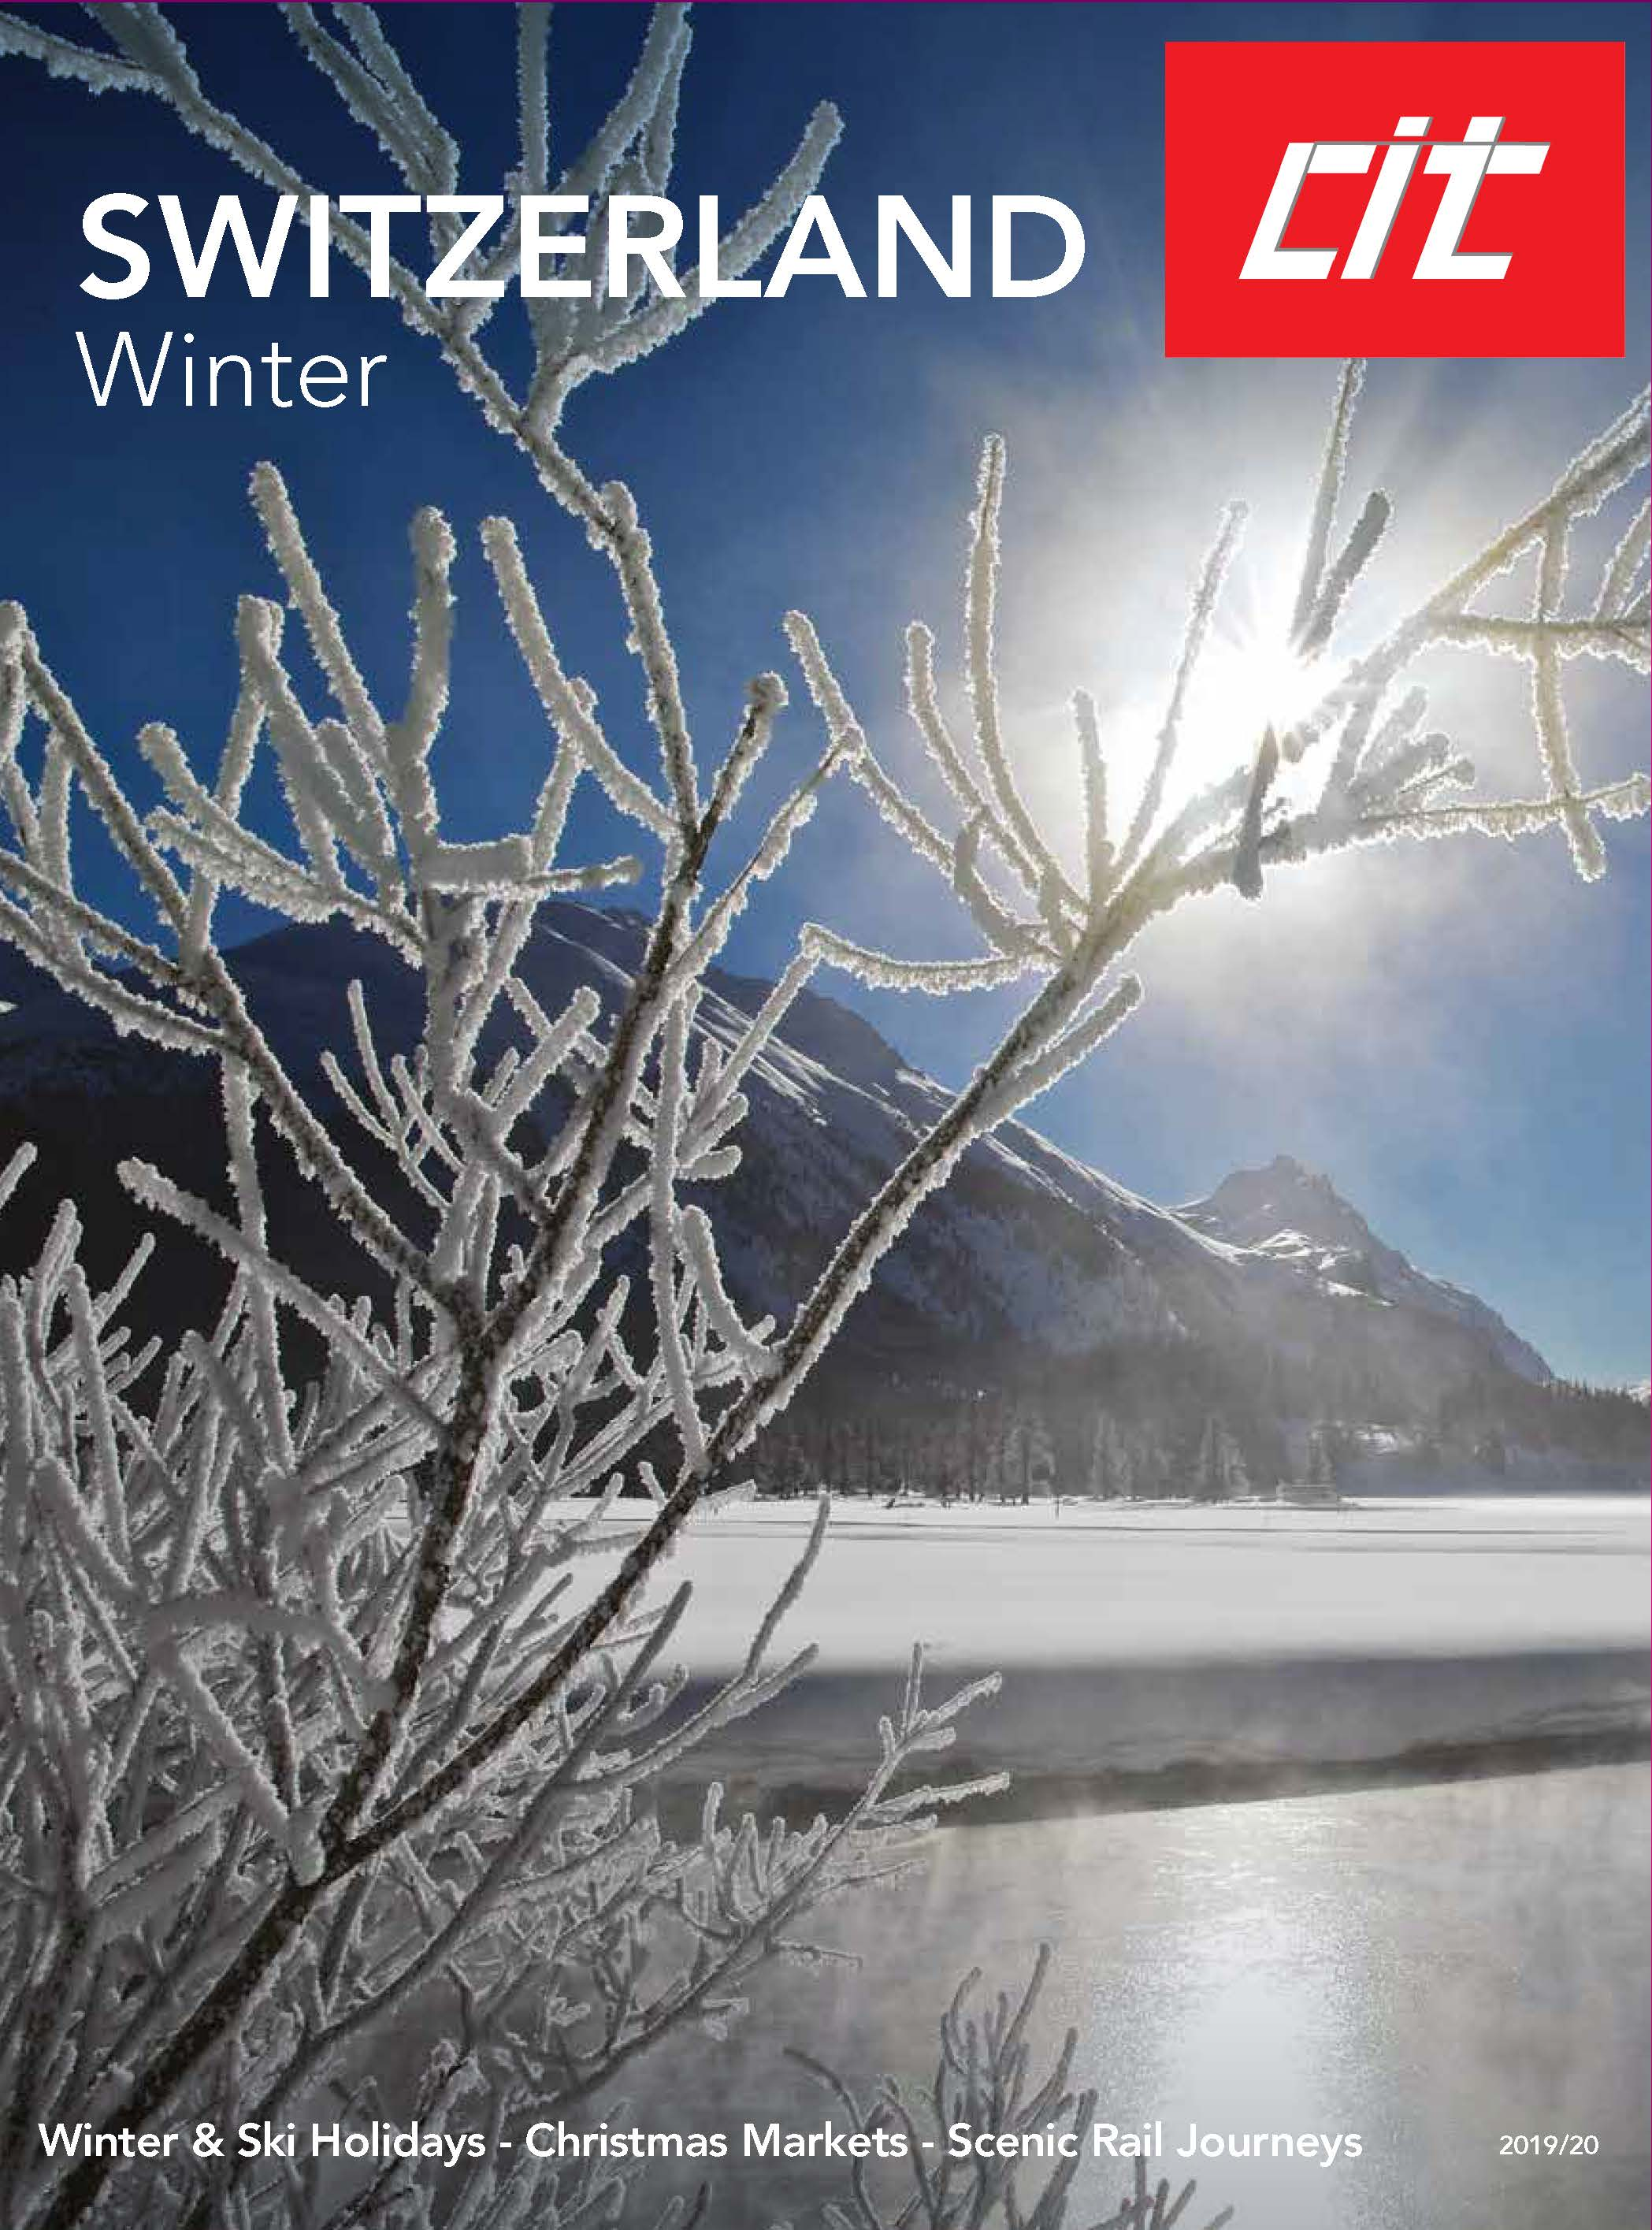 Travel to Switzerland STC 30 03 2020 Winter Packages CIT